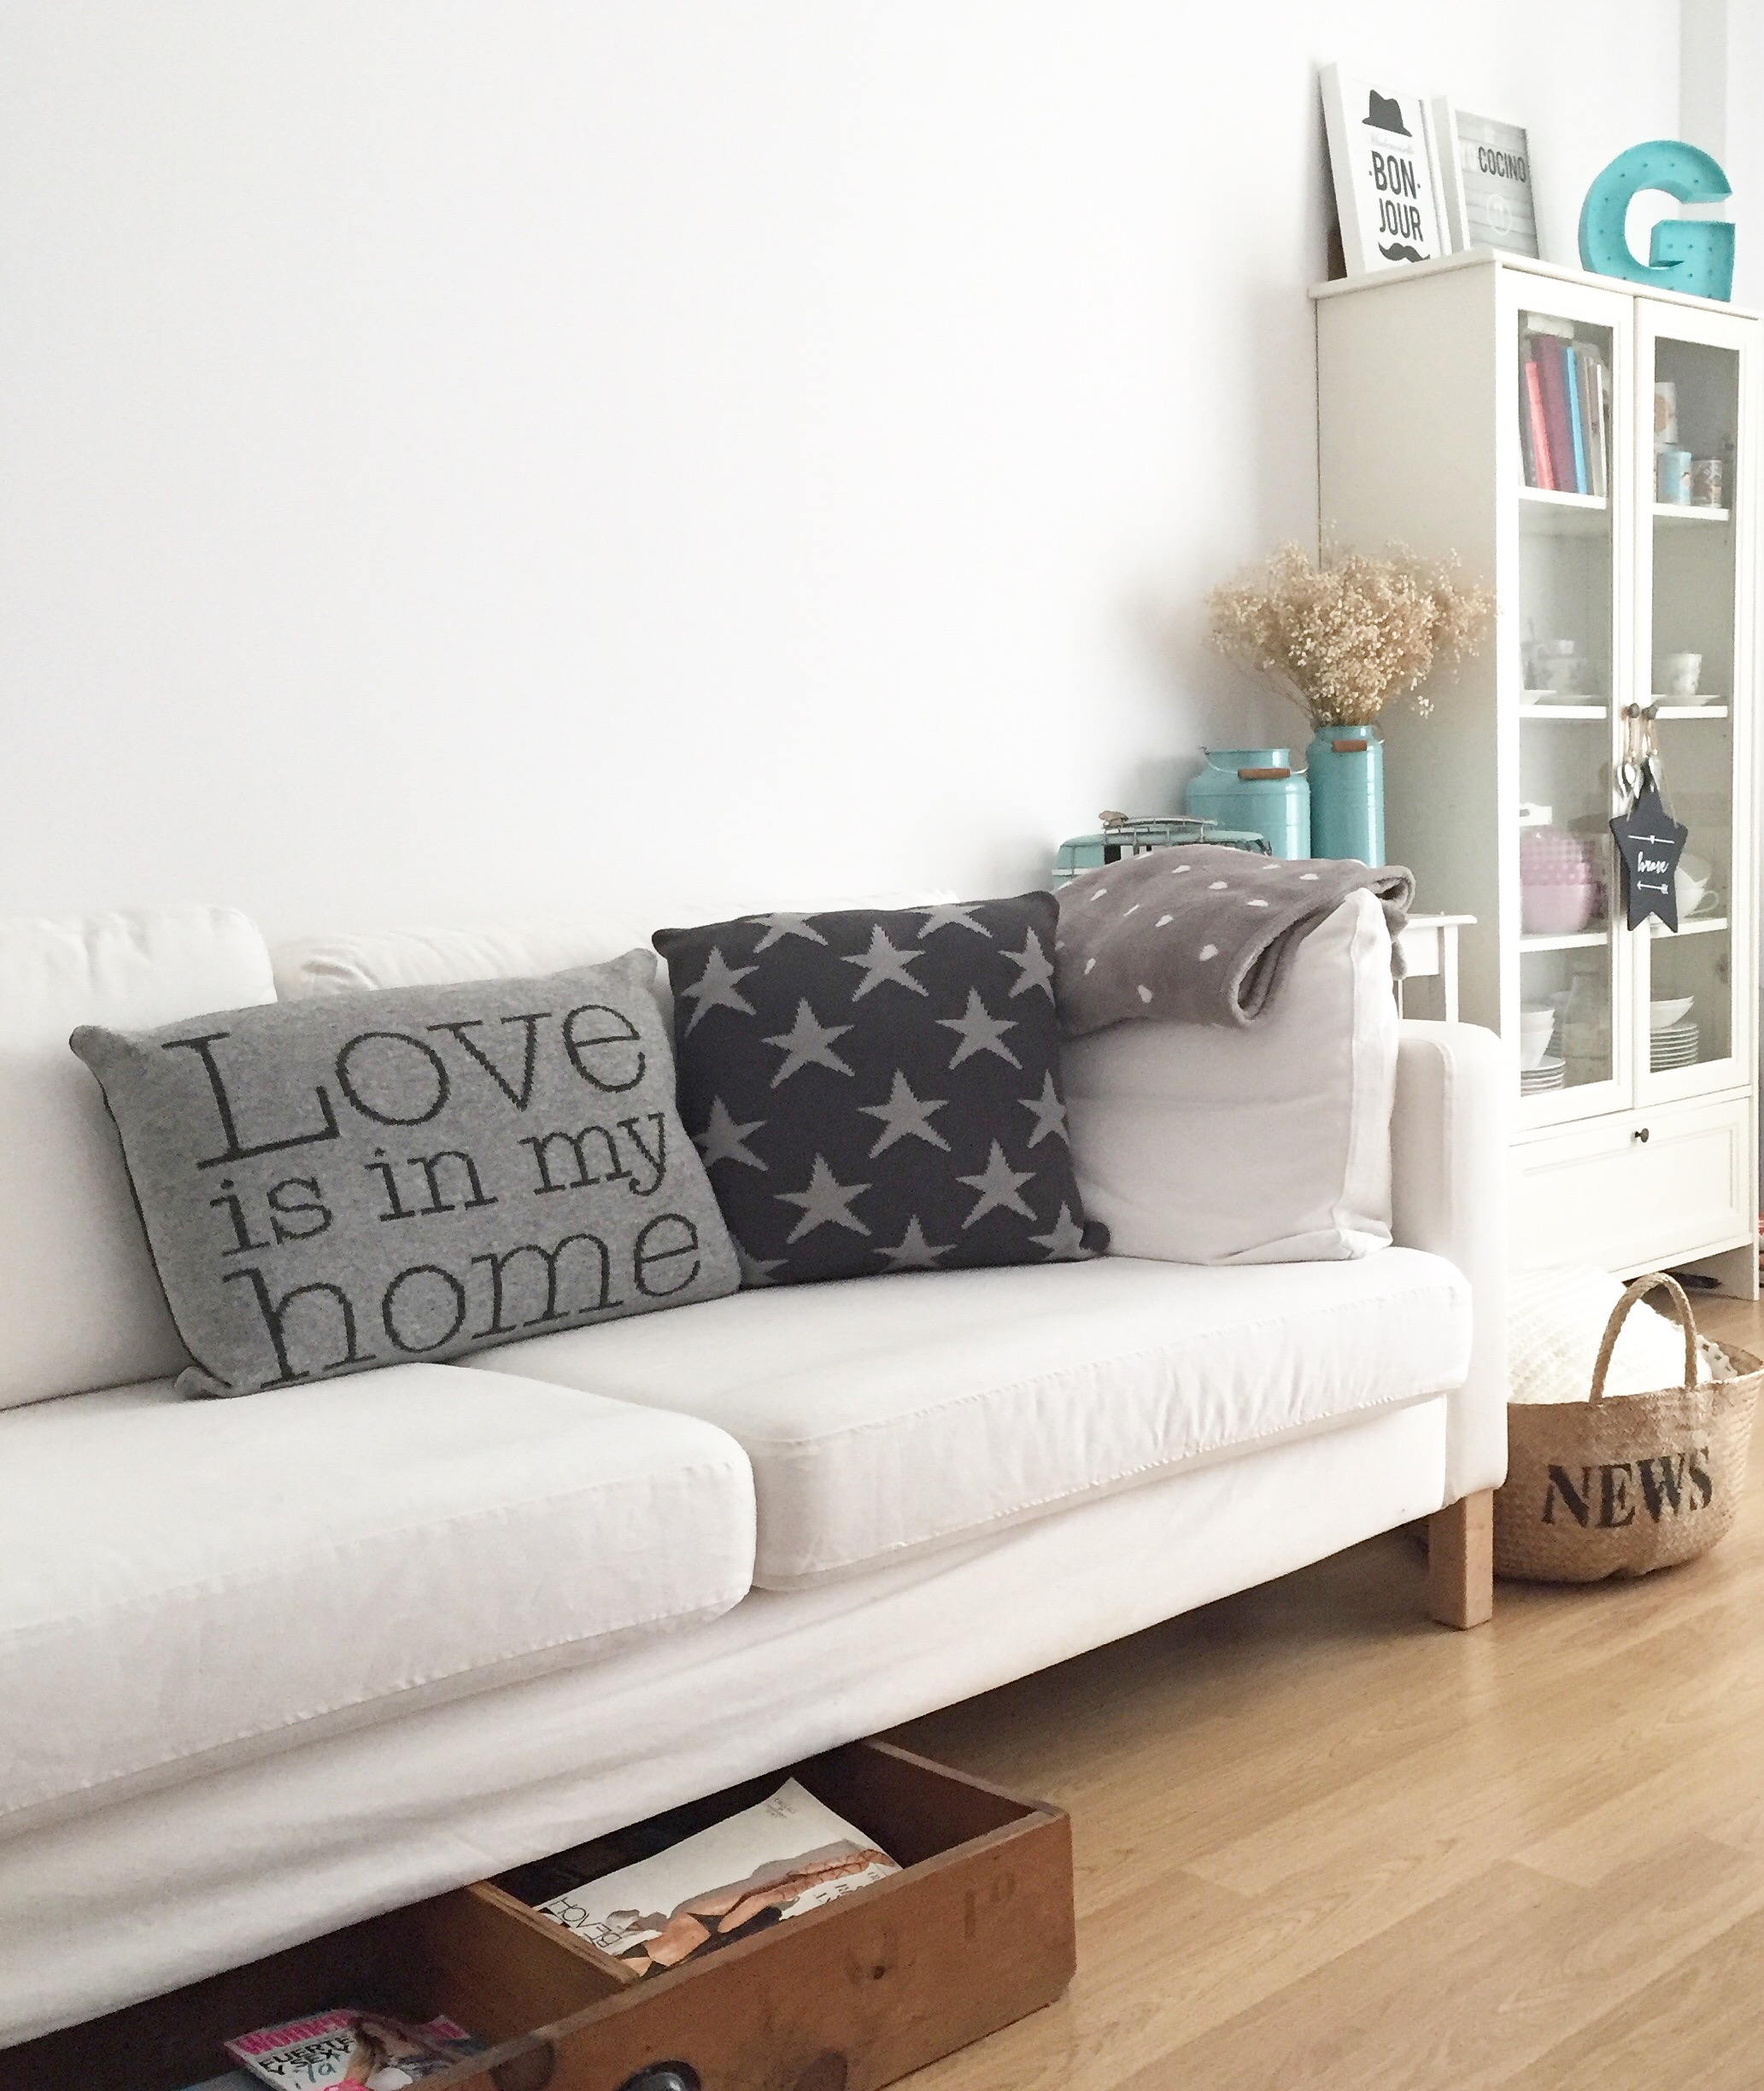 LOVE IS IN MYHOME